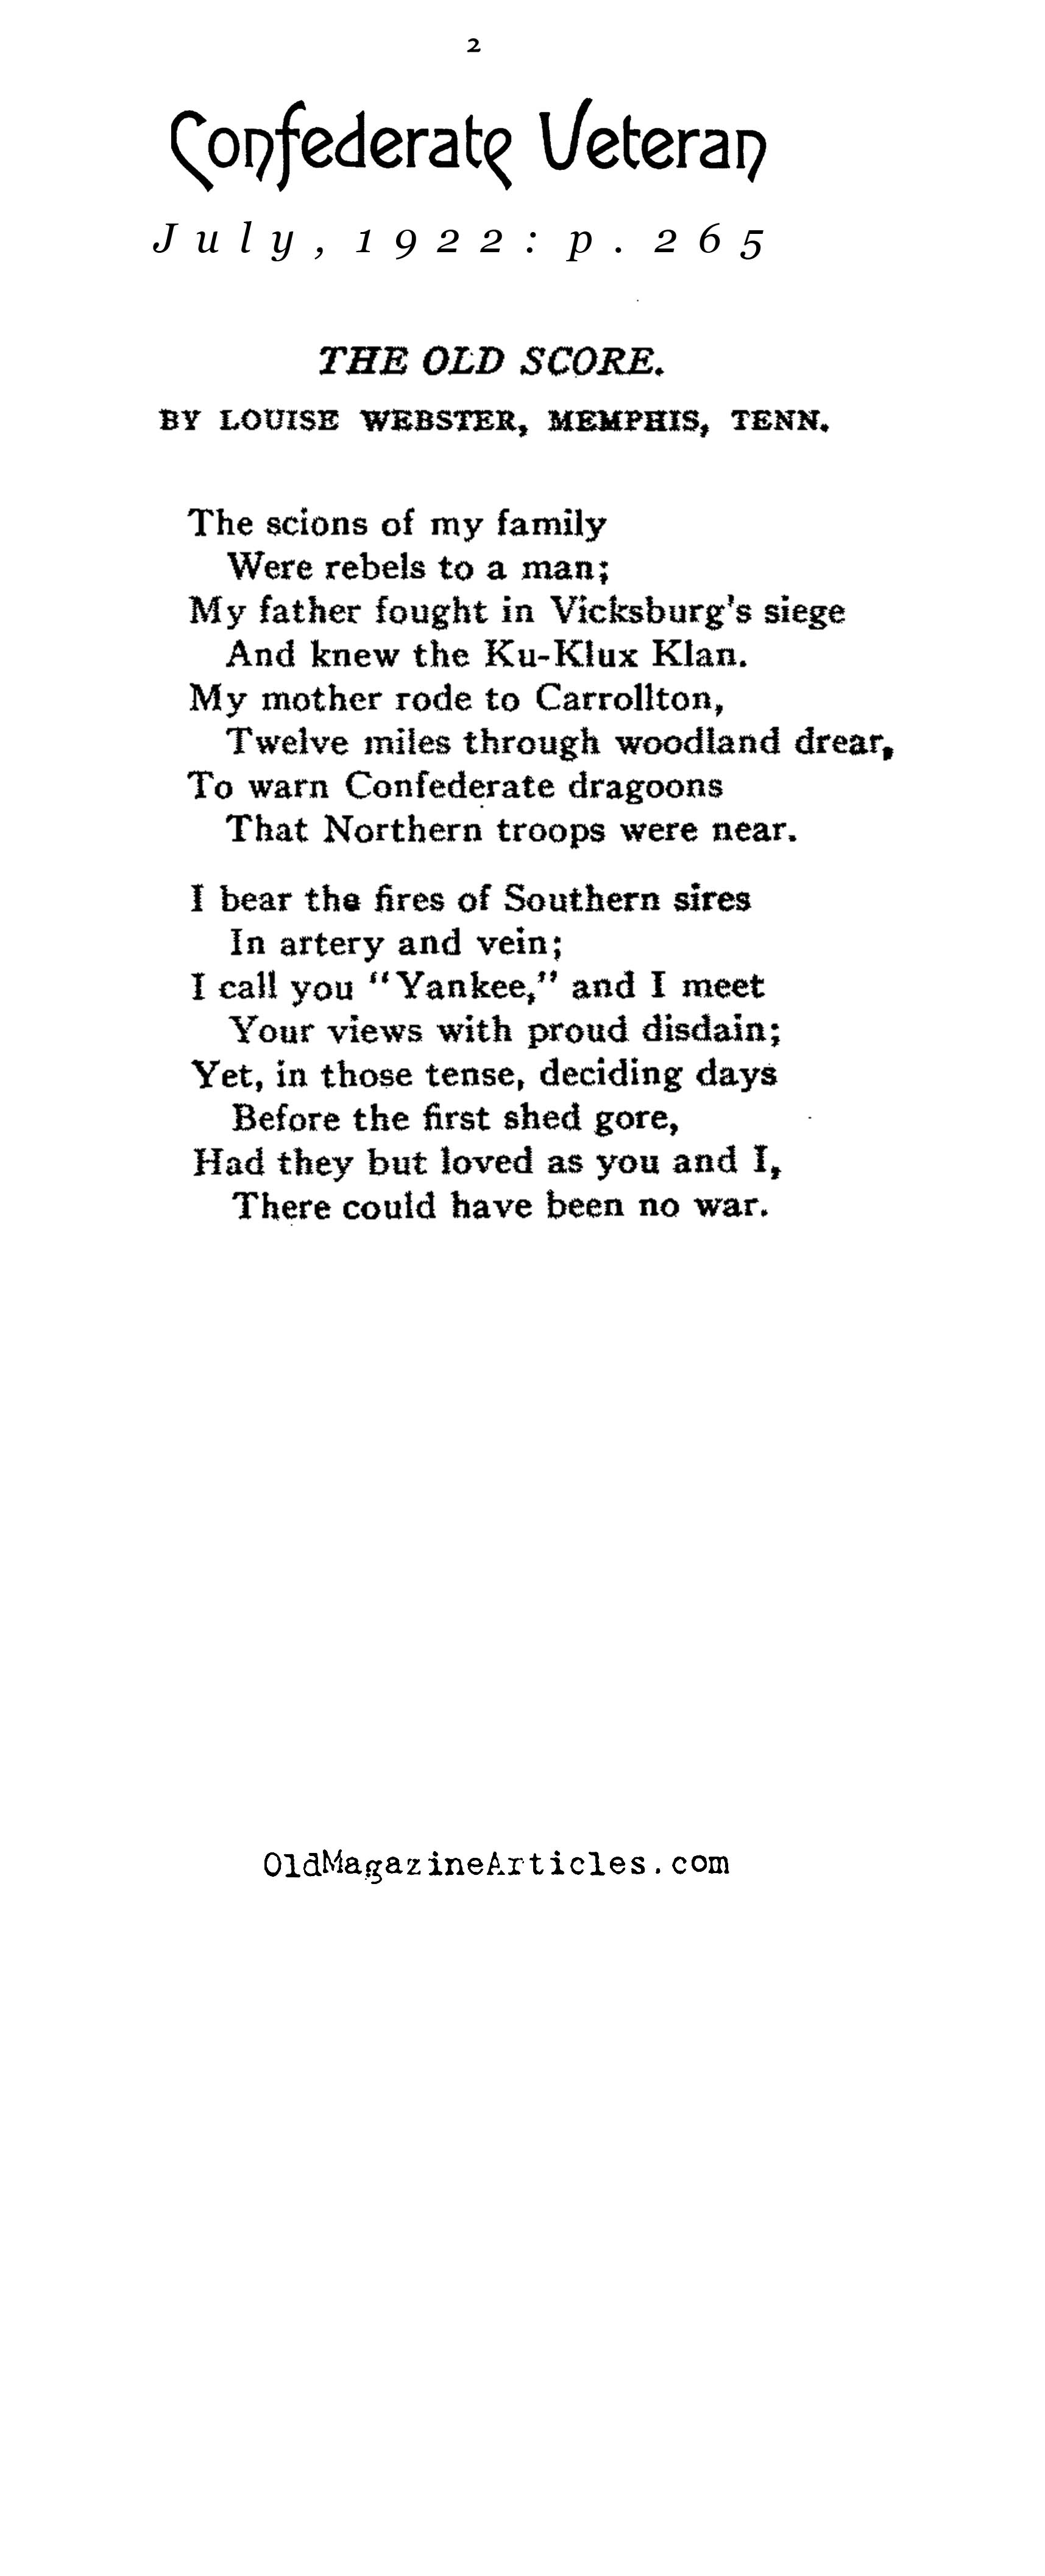 Two Civil War Poems (Confederate Veteran, 1922)